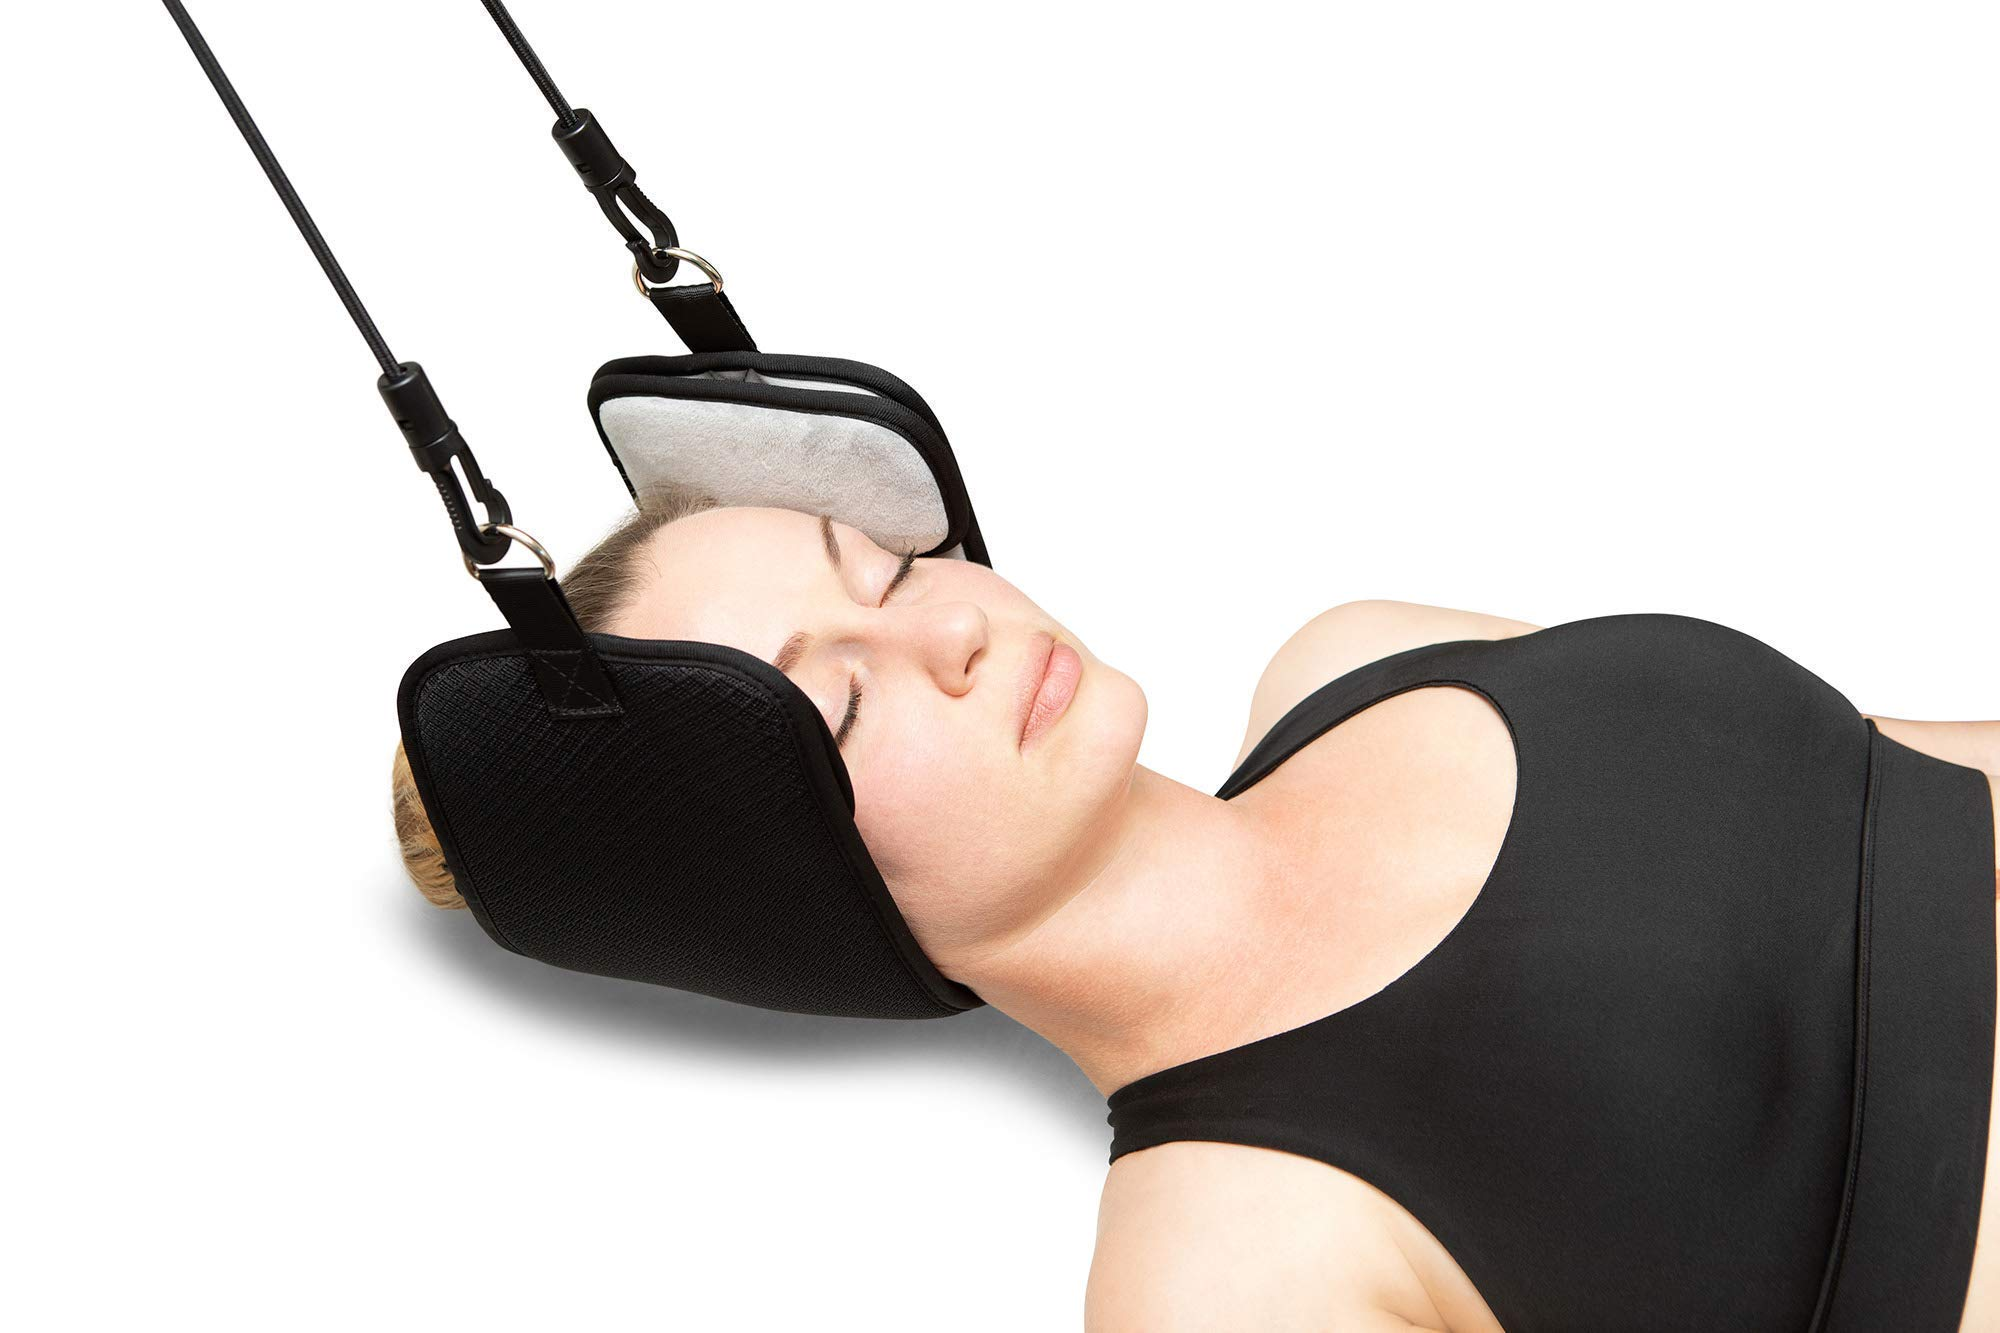 Mazzello Head Hammock for Neck Pain & Stress Relief | Cervical Traction Device | Increased Mobility & Flexibility by Mazzello